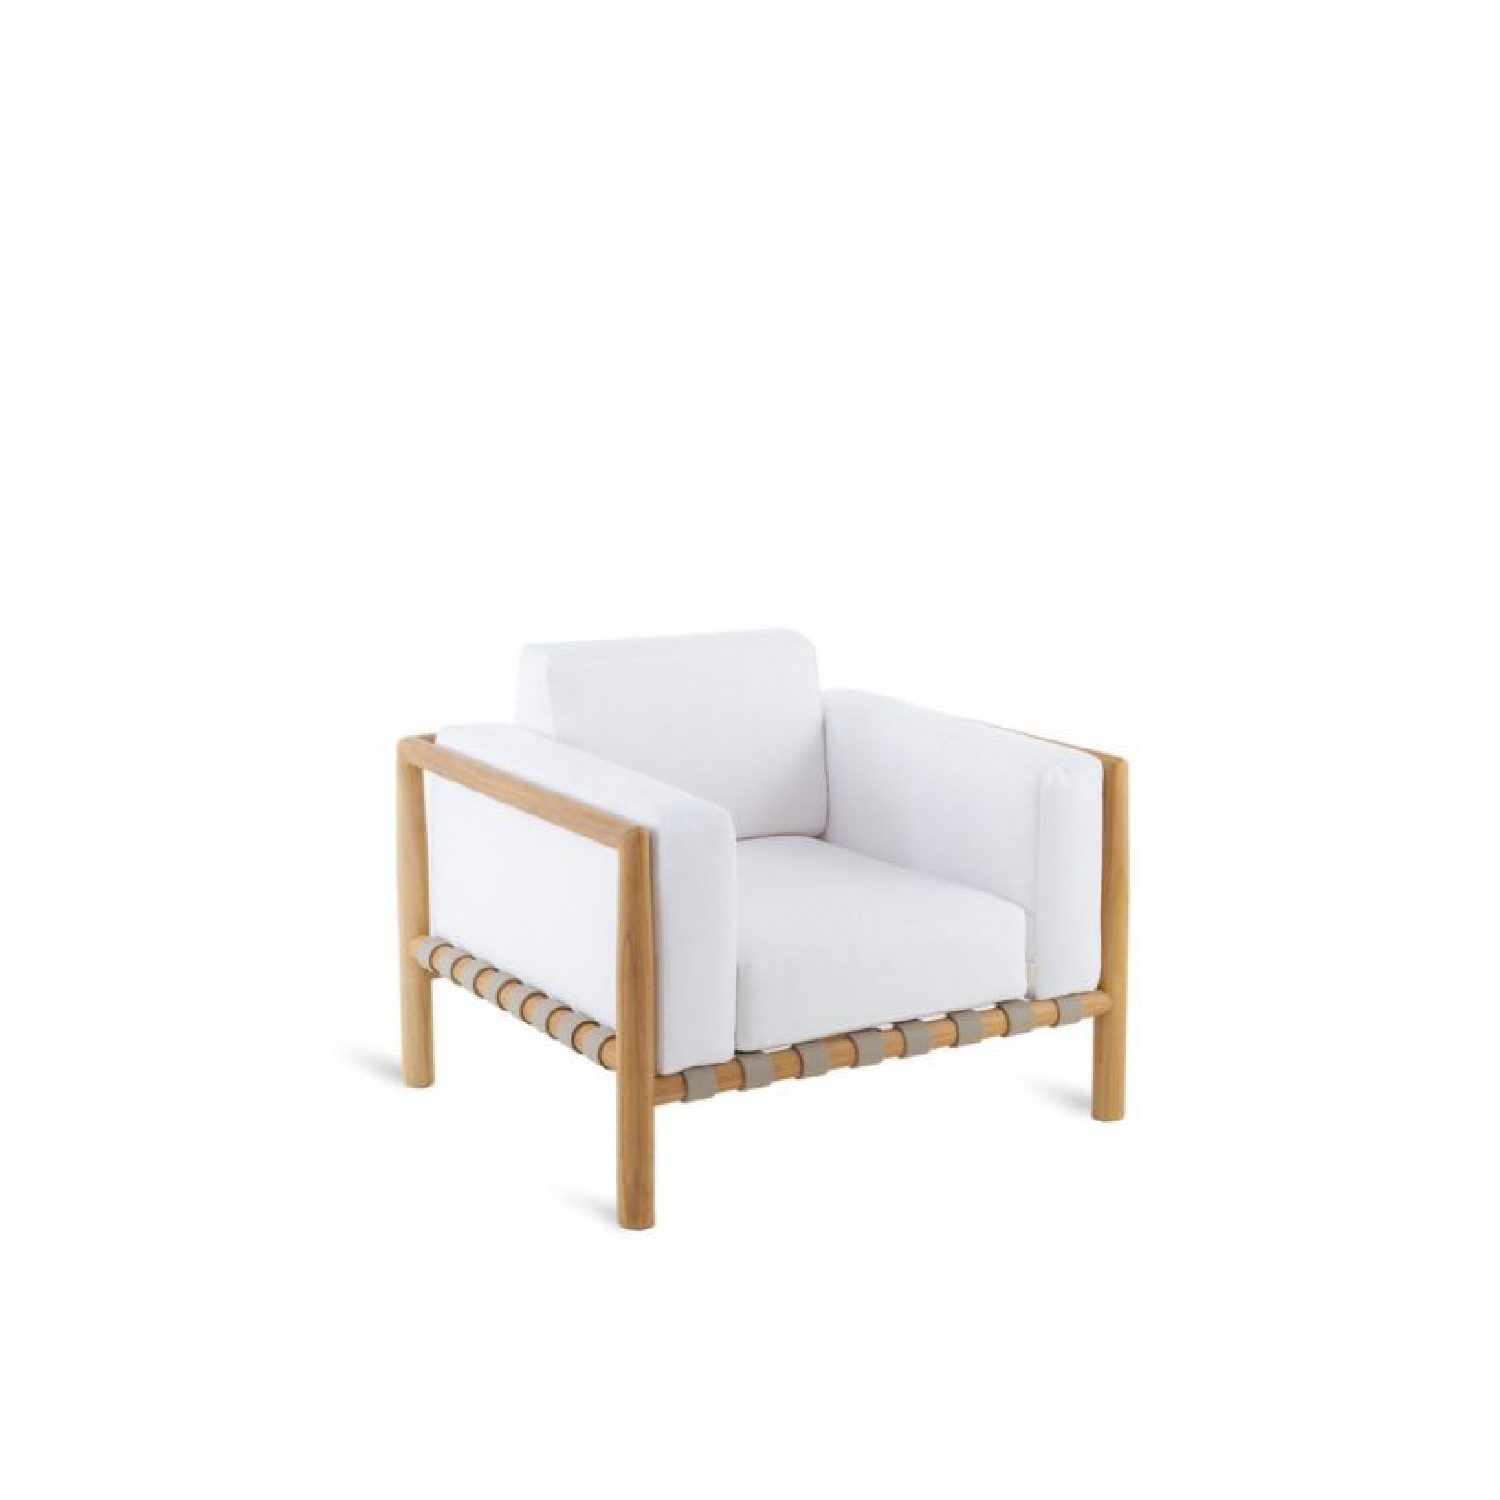 Pevero Armchair - The new really complete Pevero line exalts all the potential of teak, thanks to its clean essential design that highlights the round section of the wood.  Sofas, armchairs, tables both low and tall of various sizes, three different models of the chair and small armchair that are all well suited to other collections, as well as a sun lounger and a large round island, all characterized by teak worked in soft, rounded, graceful lines that are easy on the eye and guarantee maximum comfort, while tastefully furnishing any outdoor area.  Pevero armchair in teak (W 94 D 83 H 60 seat H 39) Structure in teak, cushion in 100% acrylic fabric colour Diamante (4 items - seat, backrest and armrest)   | Matter of Stuff